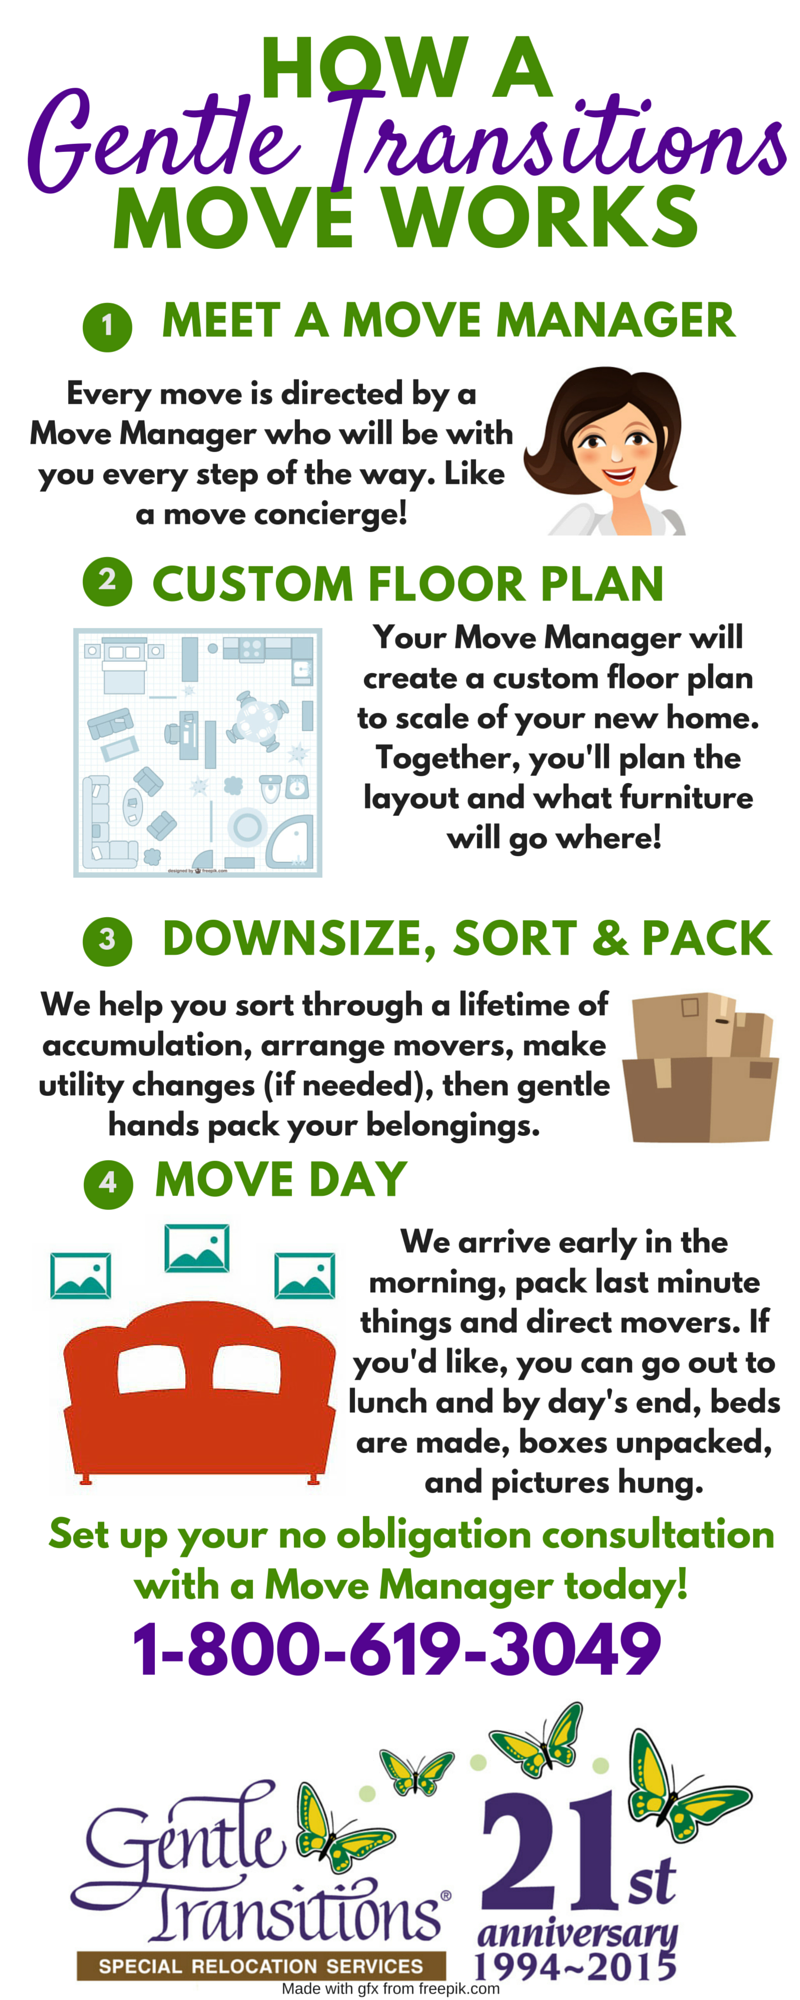 An infographic explaining how a Gentle Transitions move works!